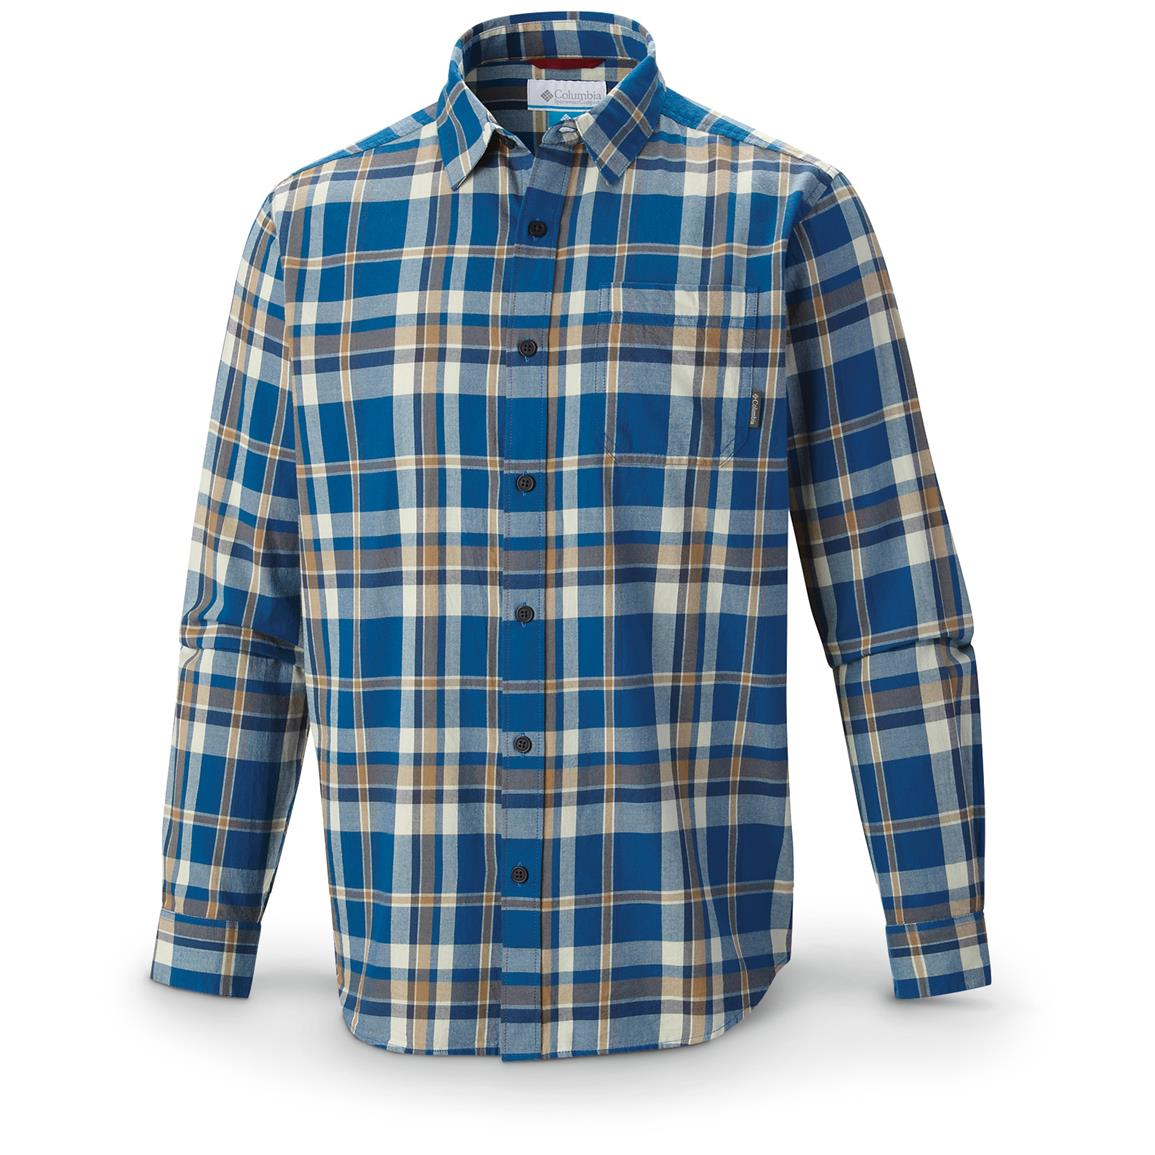 Columbia Vapor Ridge III Shirt, Long-sleeved, Marine Blue Twill